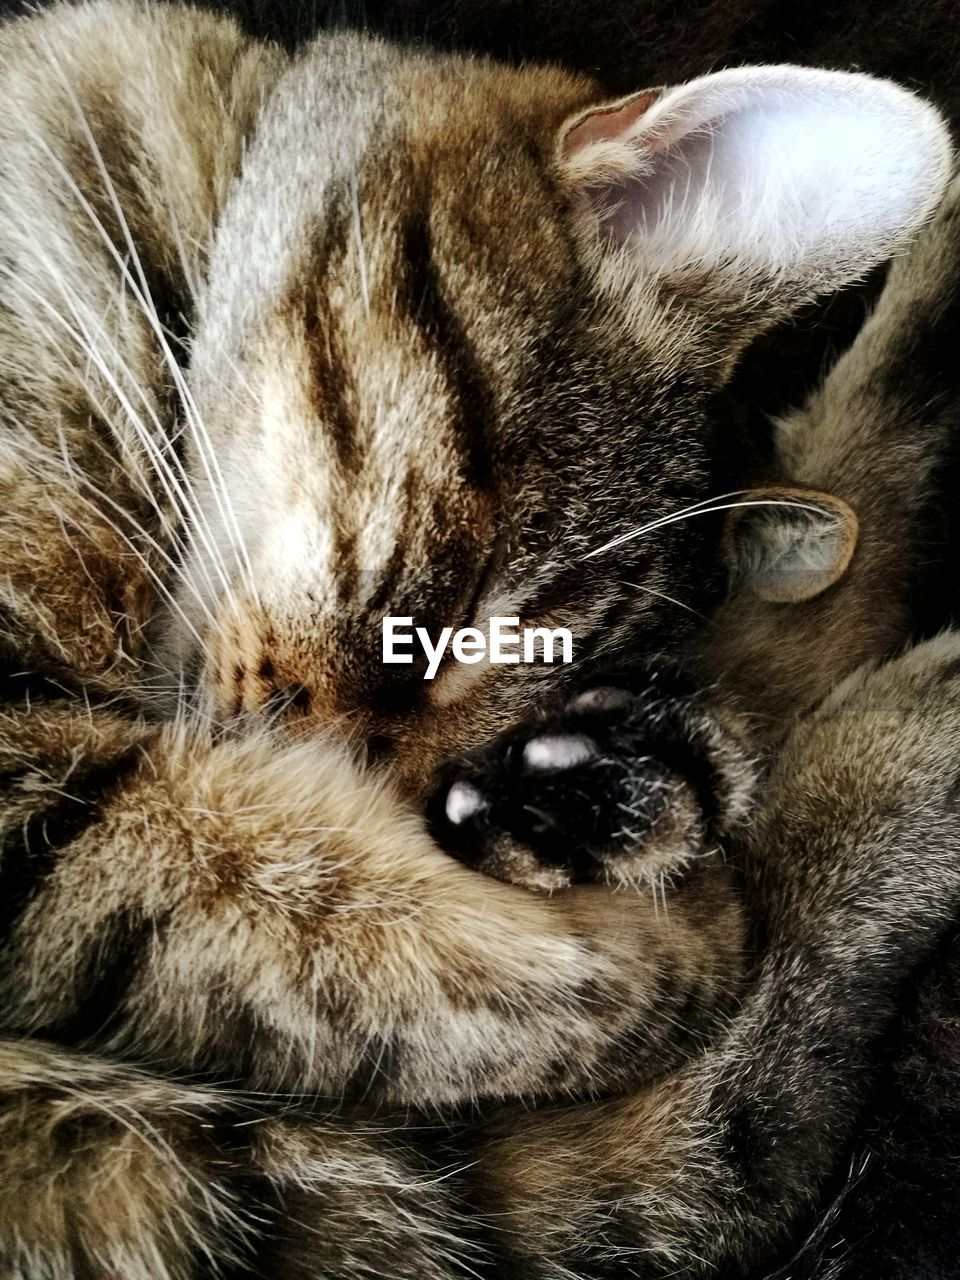 mammal, animal themes, animal, one animal, pets, domestic animals, cat, domestic cat, domestic, feline, whisker, animal body part, relaxation, close-up, no people, indoors, animal head, cute, vertebrate, portrait, tabby, snout, napping